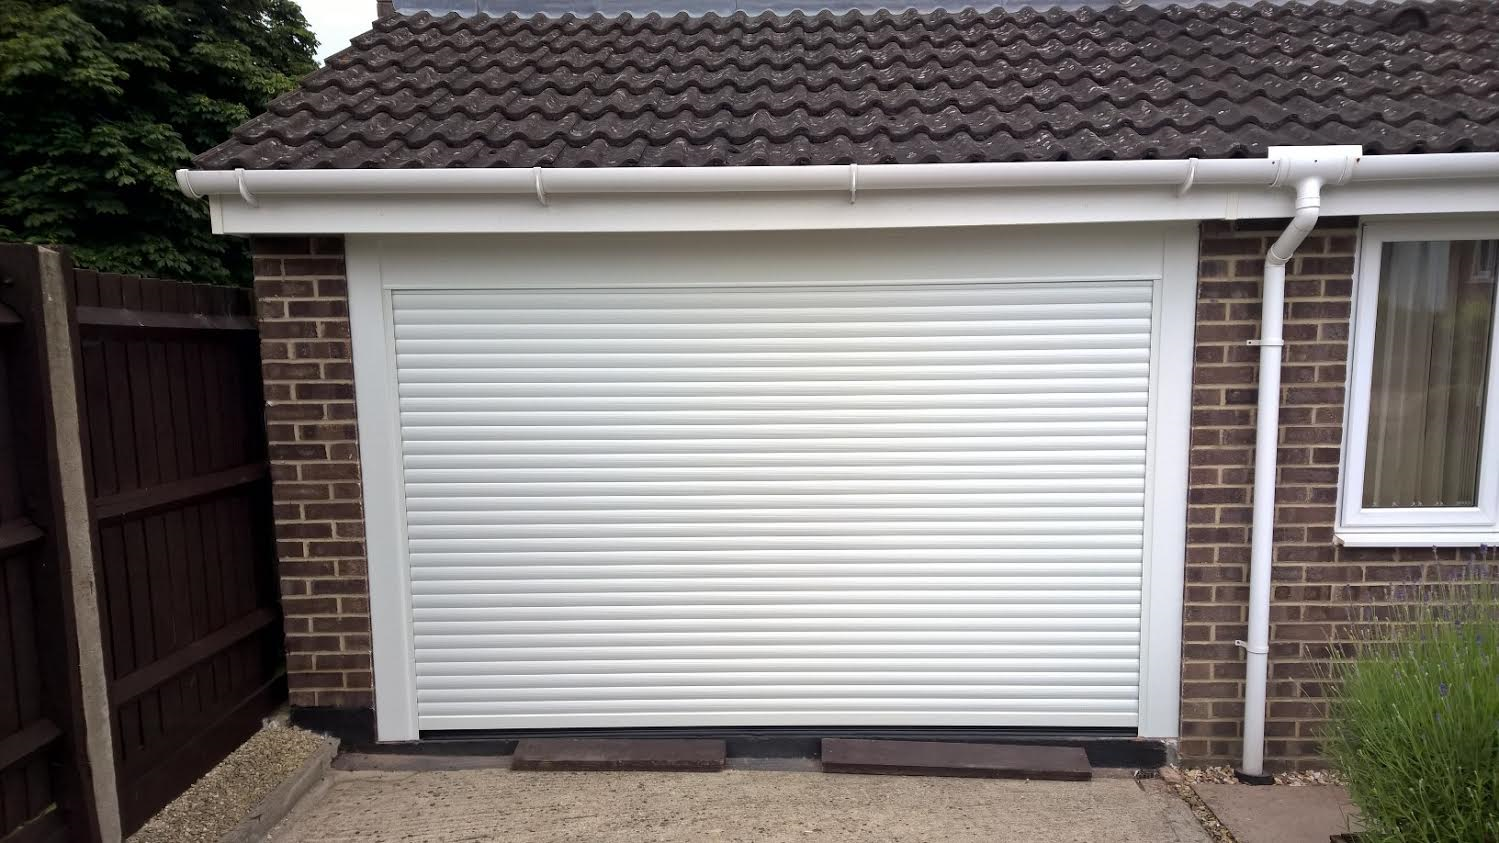 Compact Electric Roller Garage Door in Kidlington - Elite GD on loc rollers, gate rollers, metal ball rollers, sexy hair rollers, landscaping rollers, electric rollers, garage storage, industrial rollers, garage plans, concrete rollers, paving rollers, textured rollers, men in rollers, stucco rollers, permanent wave rollers, small rubber rollers, women in rollers, appliance rollers, track rollers, garage doors with red,